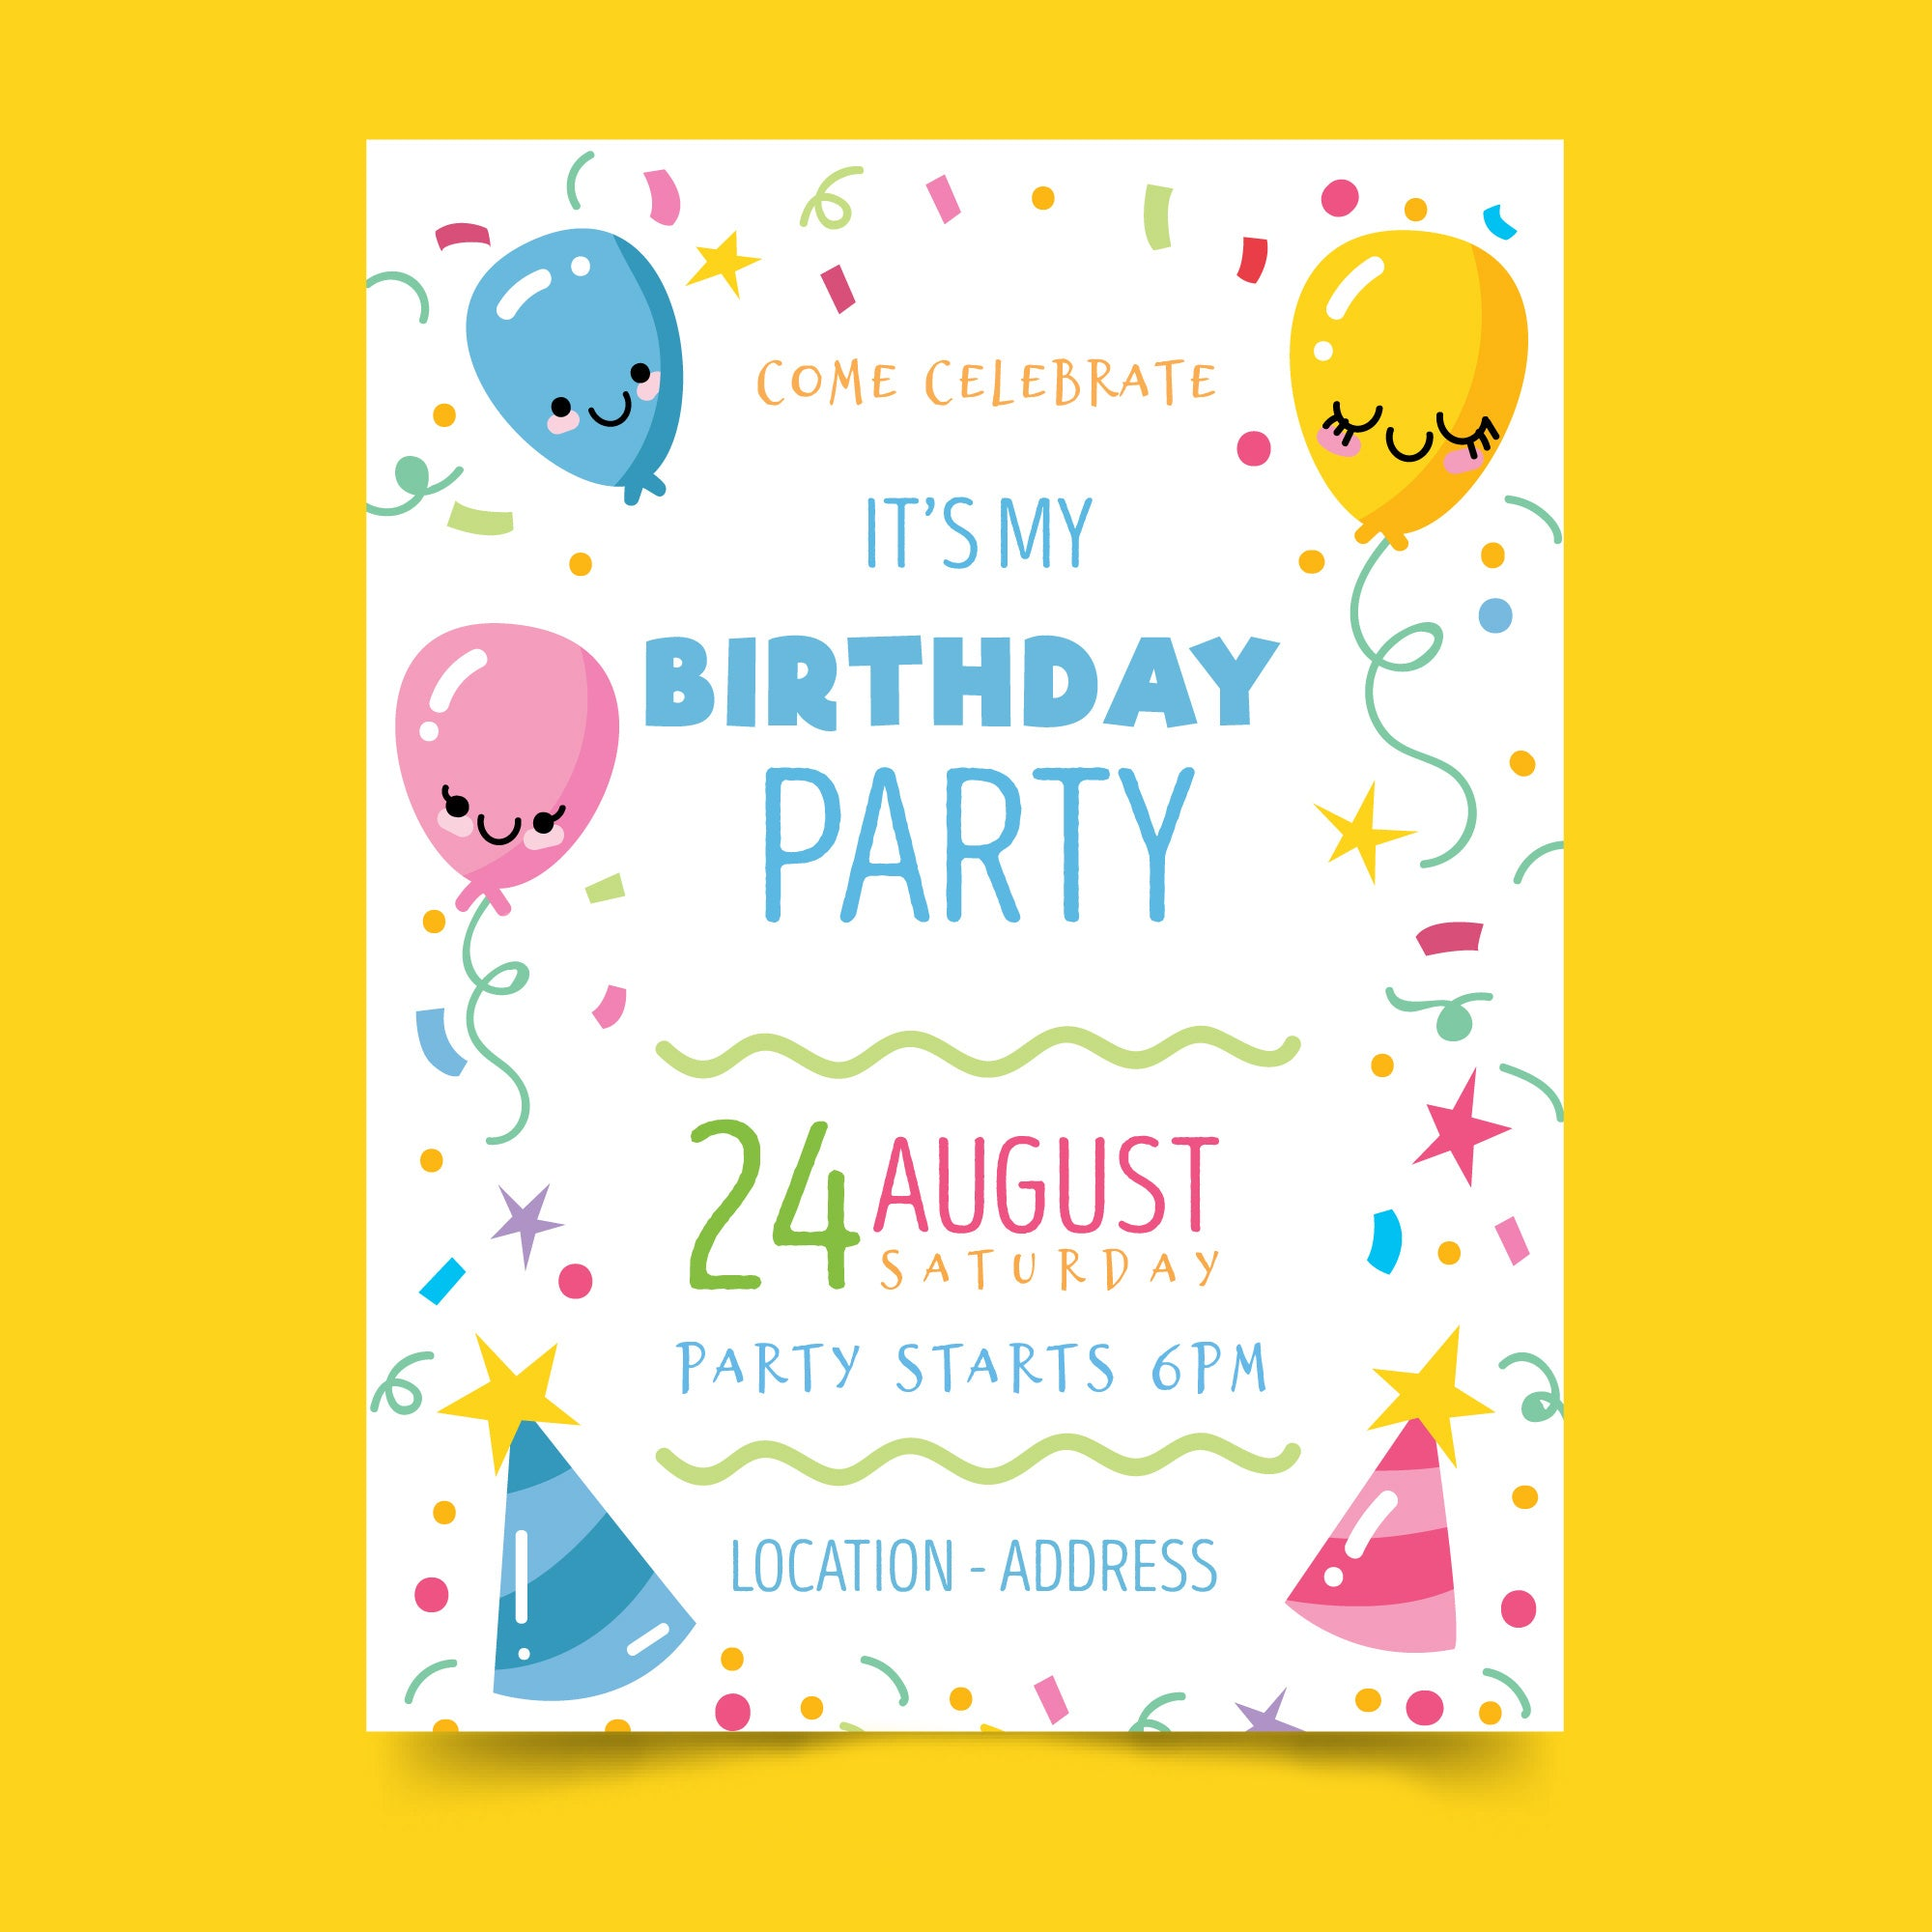 Come Celebrate It S My Birthday Party Theme Invitation Card For Kids Set Of 25 Pcs